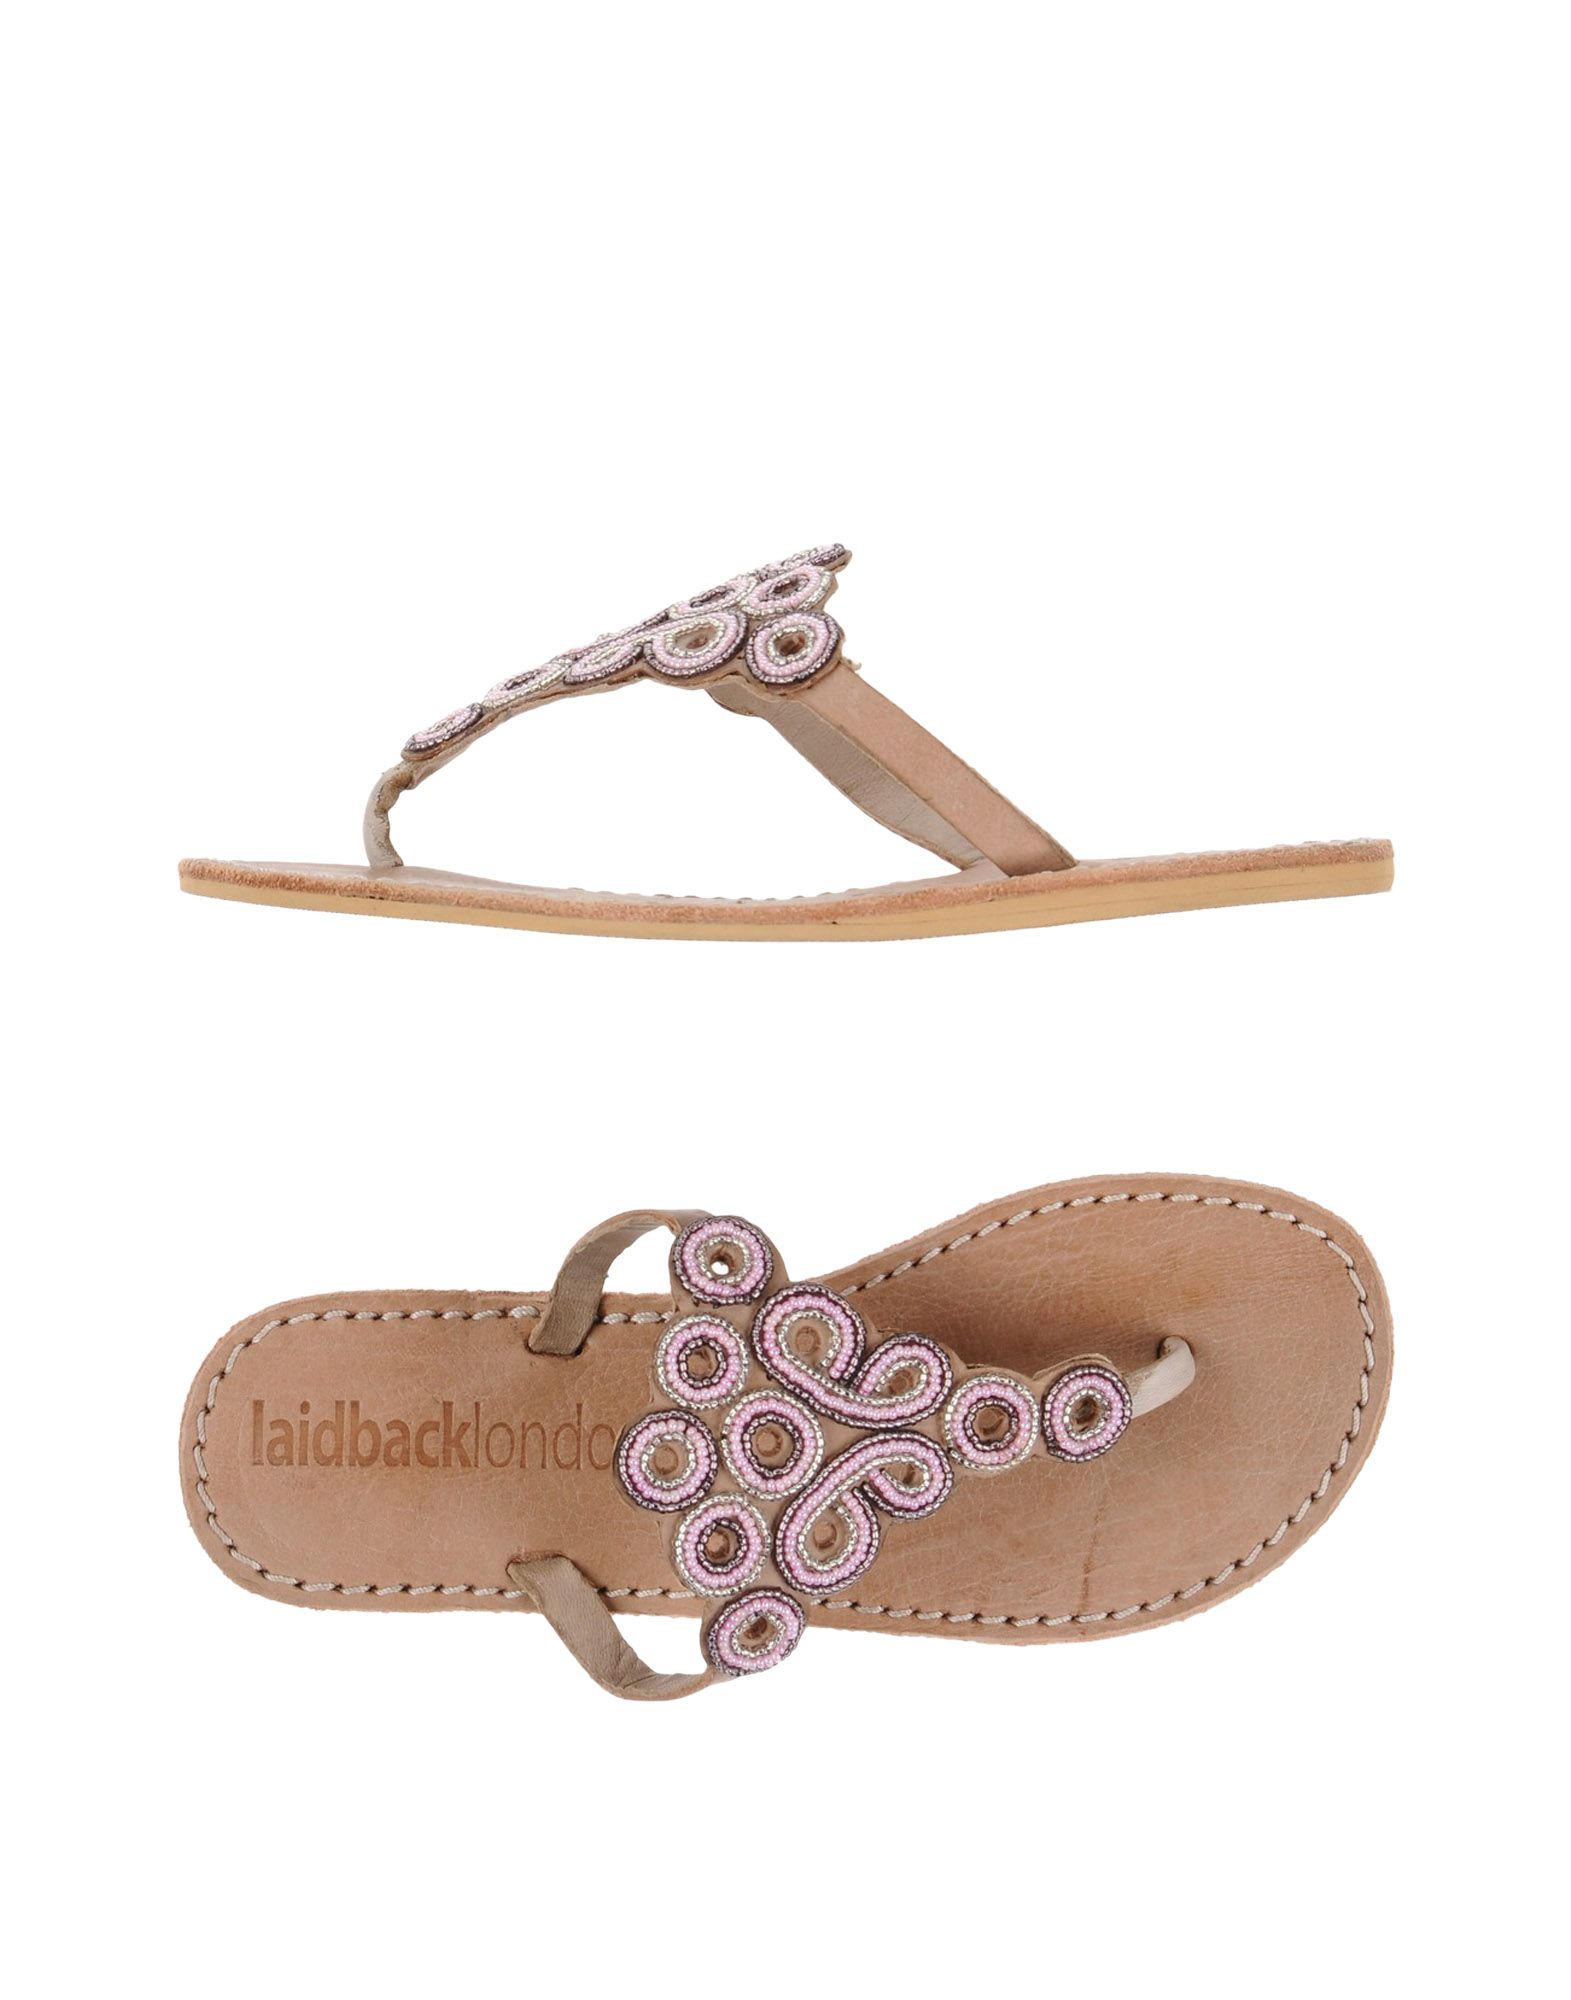 LAIDBACK LONDON Toe Strap Sandals in Pink